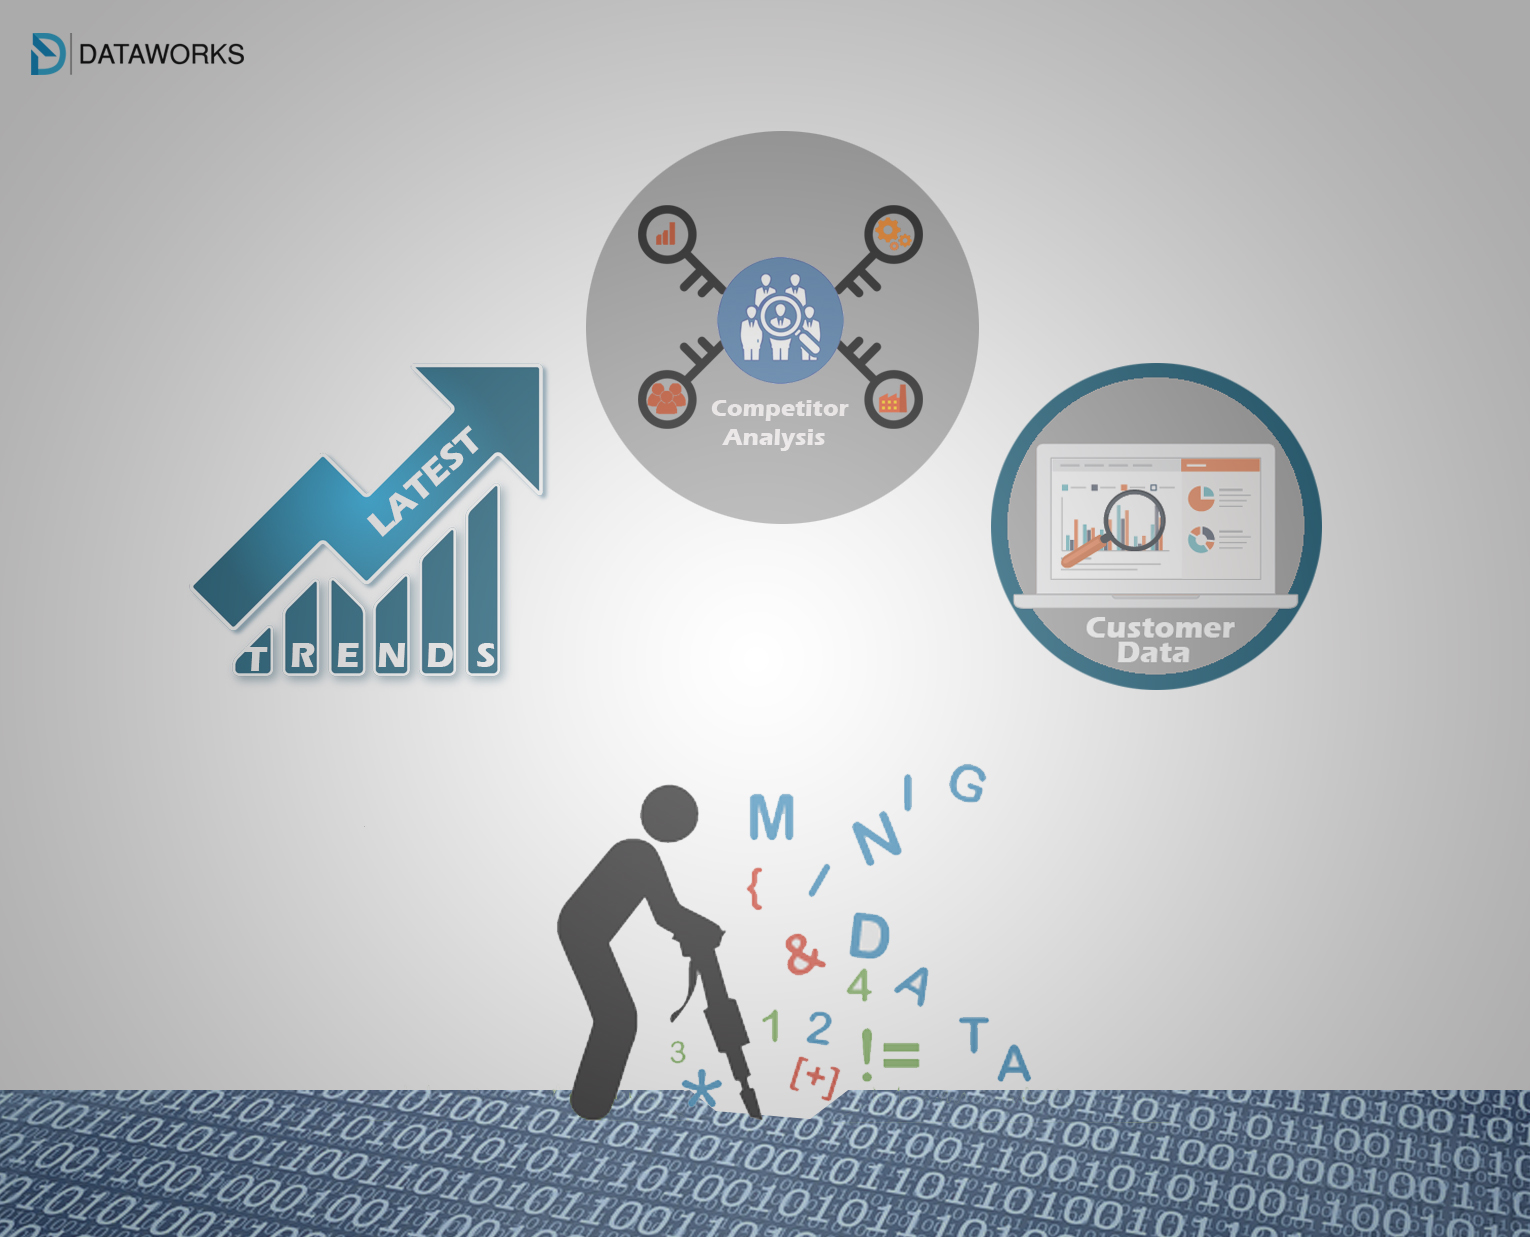 Why is data mining required for businesses?